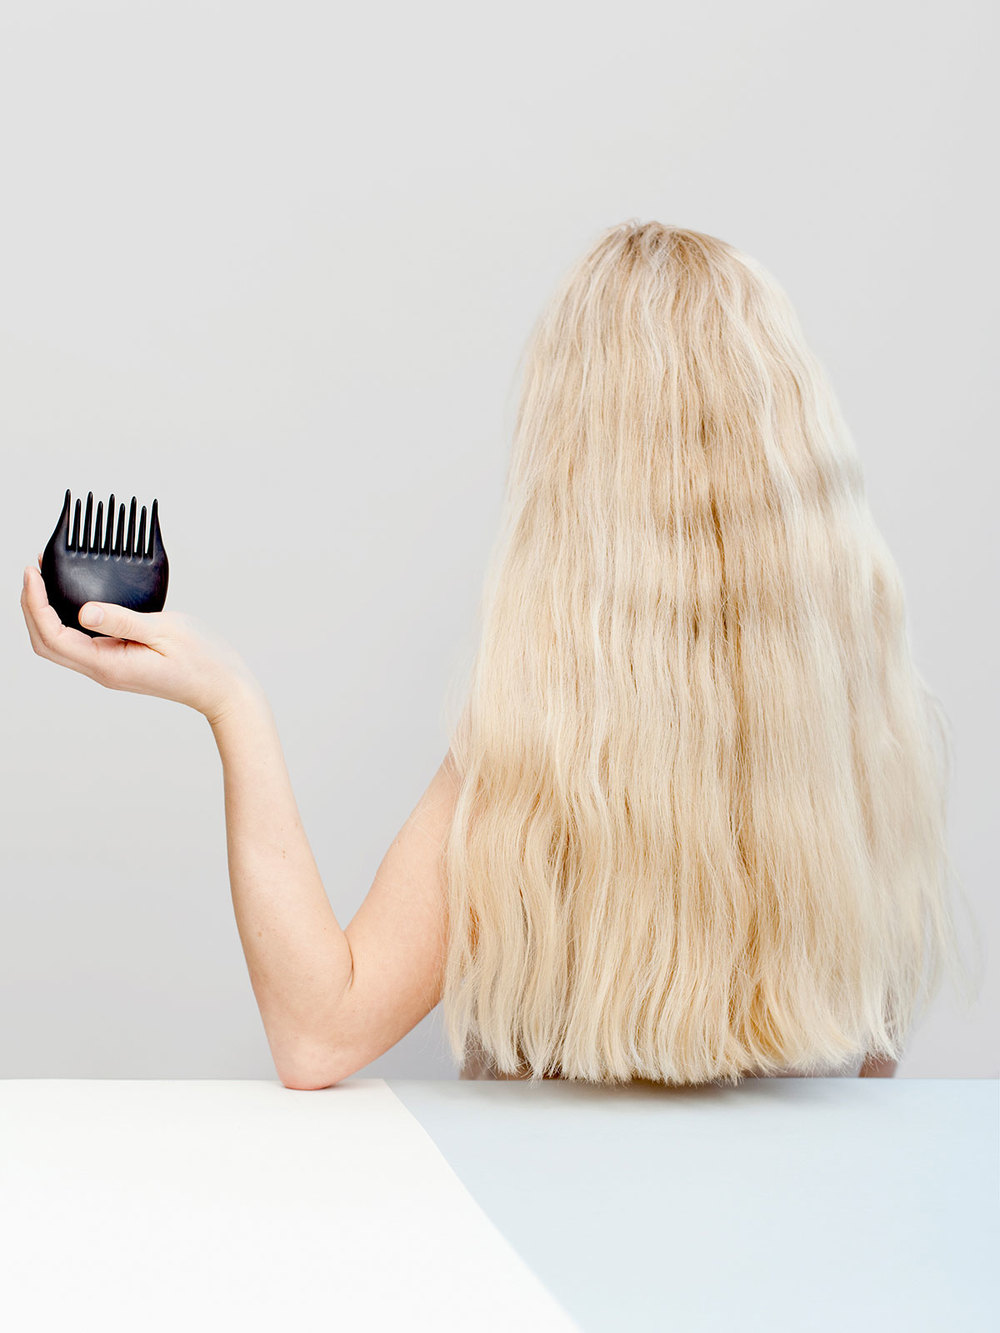 W2-comb-and-greiss.jpg